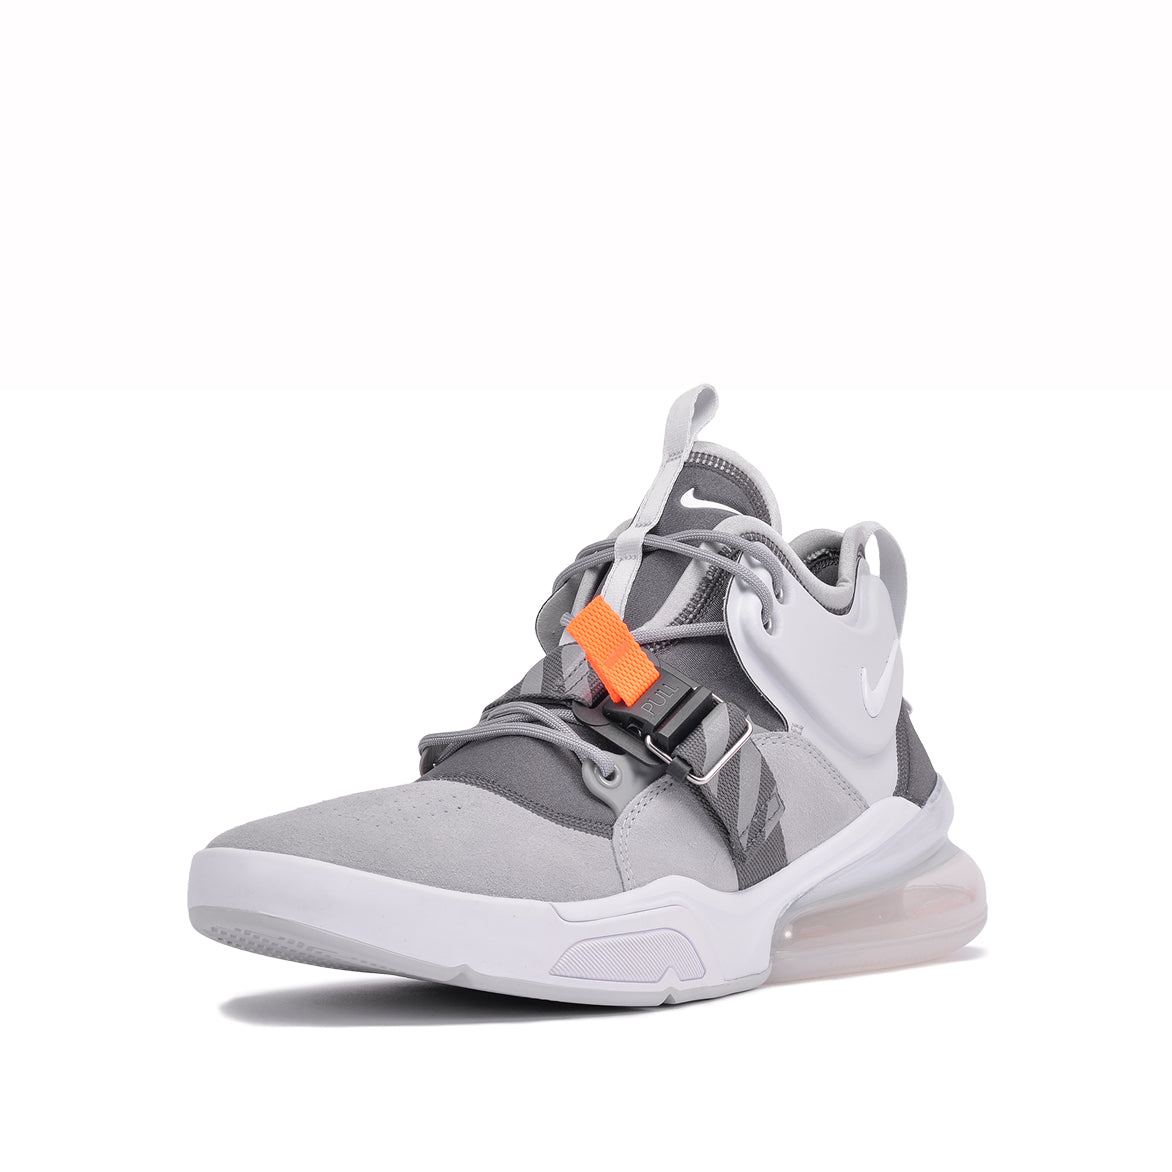 AIR FORCE 270 - WOLF GREY